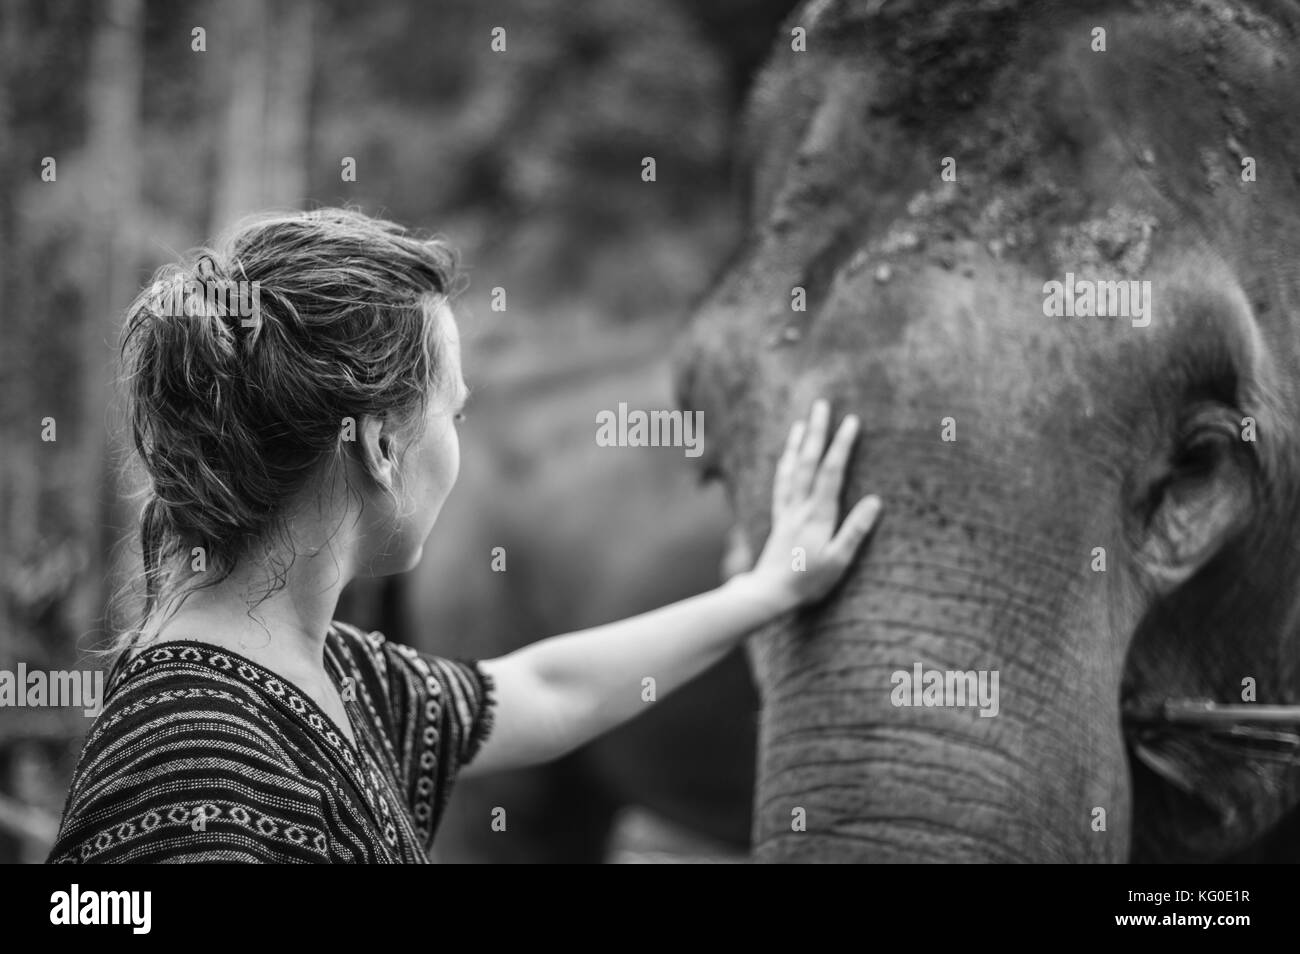 500px Photo ID: 138124397 - Shot in an elephant preservation camp in